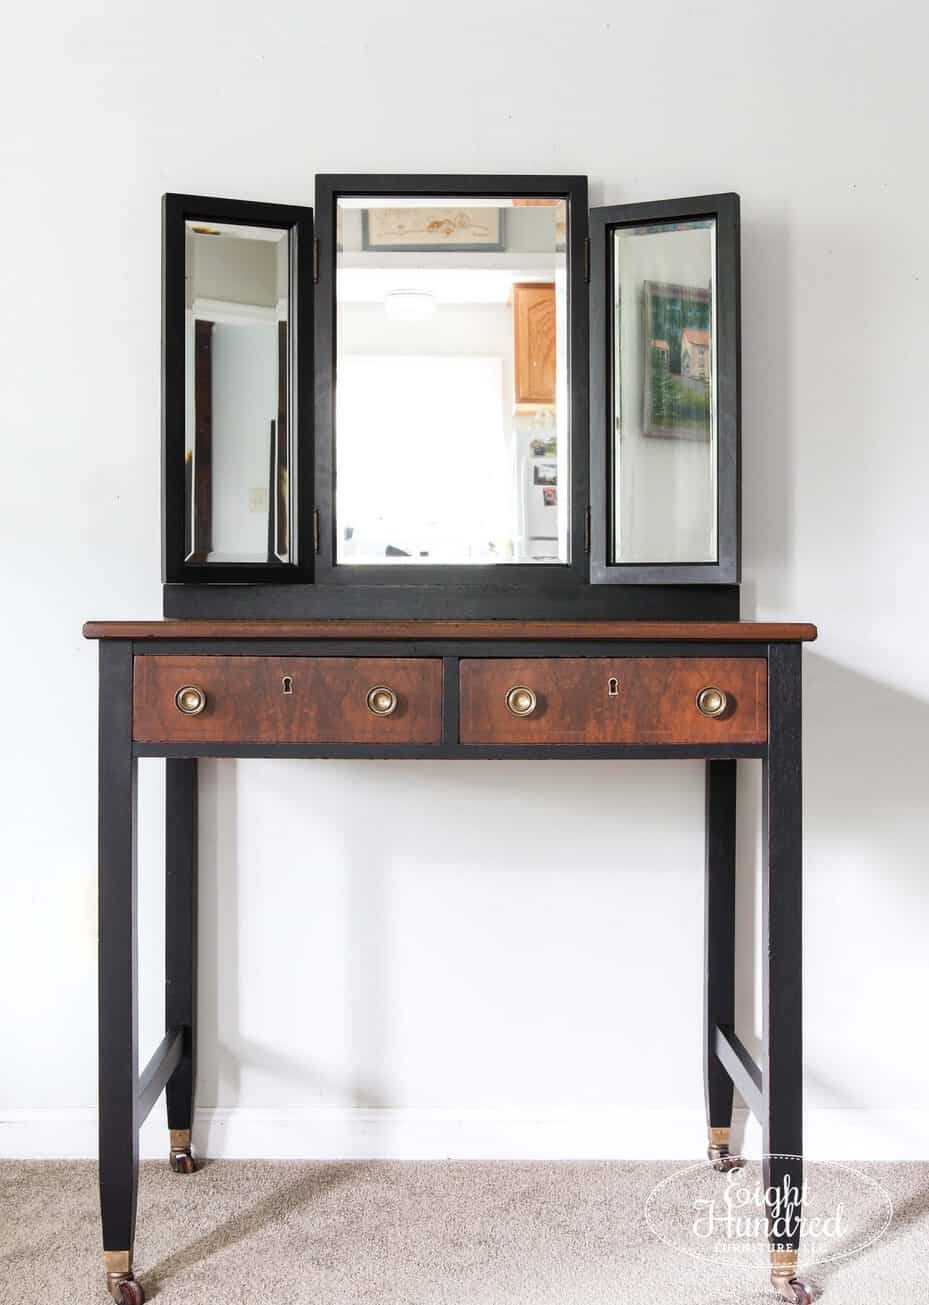 Vanity painted in Lamp Black Milk Paint and stained in Antique Walnut Gel Stain by General Finishes